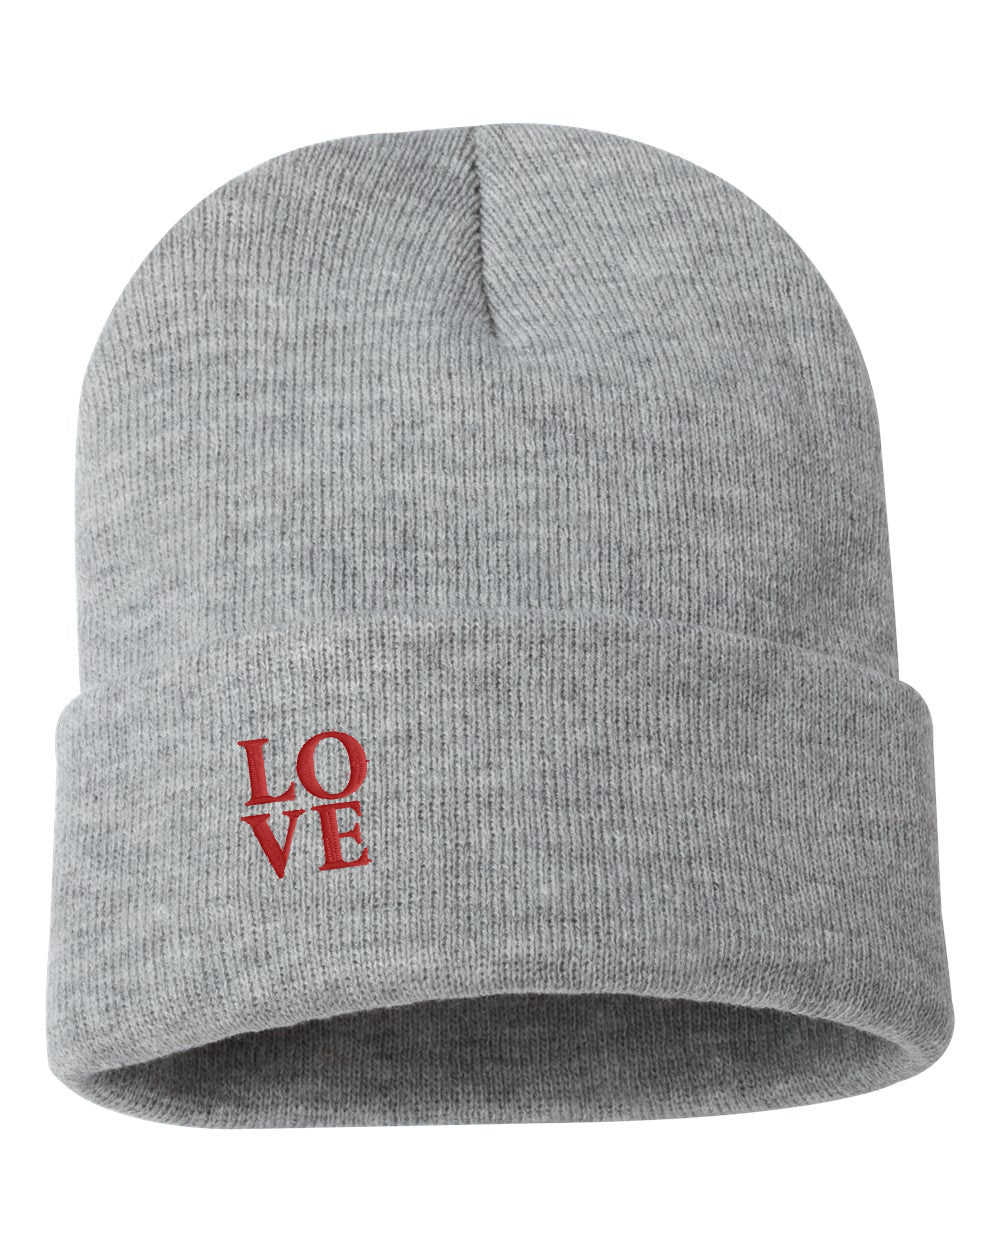 "LOVE Embroidered Ribbed 12"" Inch Acrylic Knit Beanie"